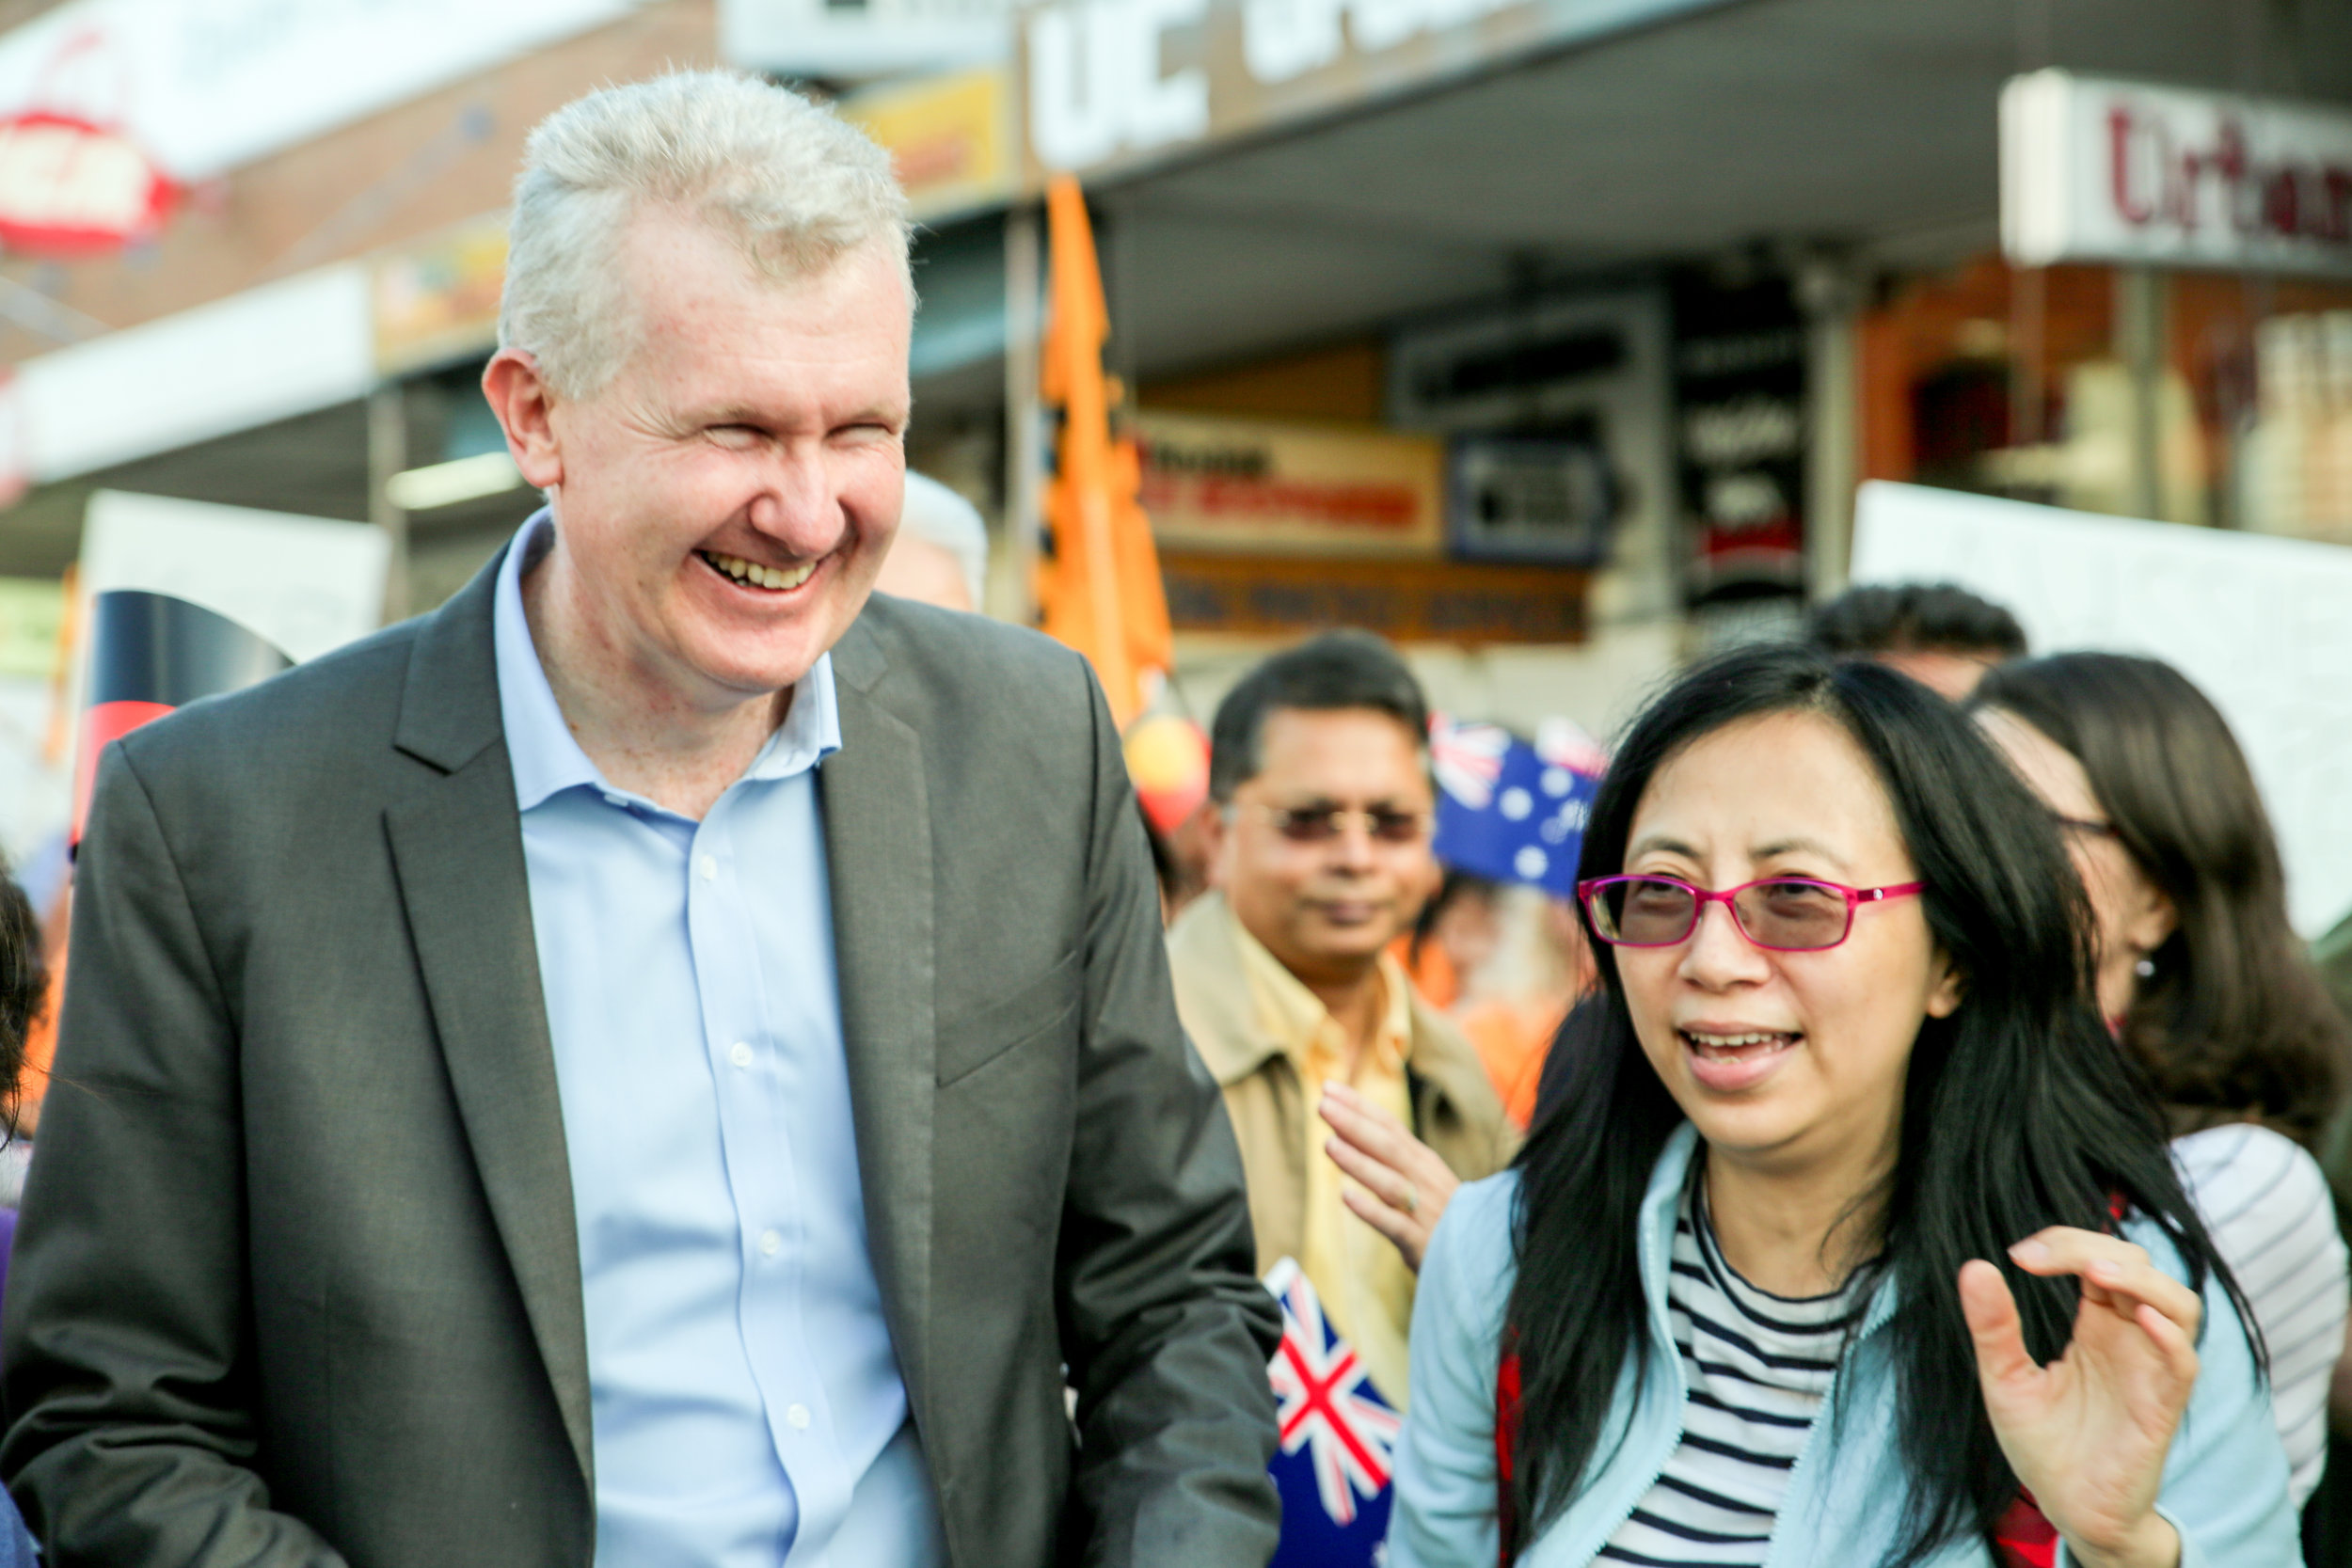 170331 Tony Burke Walk for Respect E1ALL-49.jpg